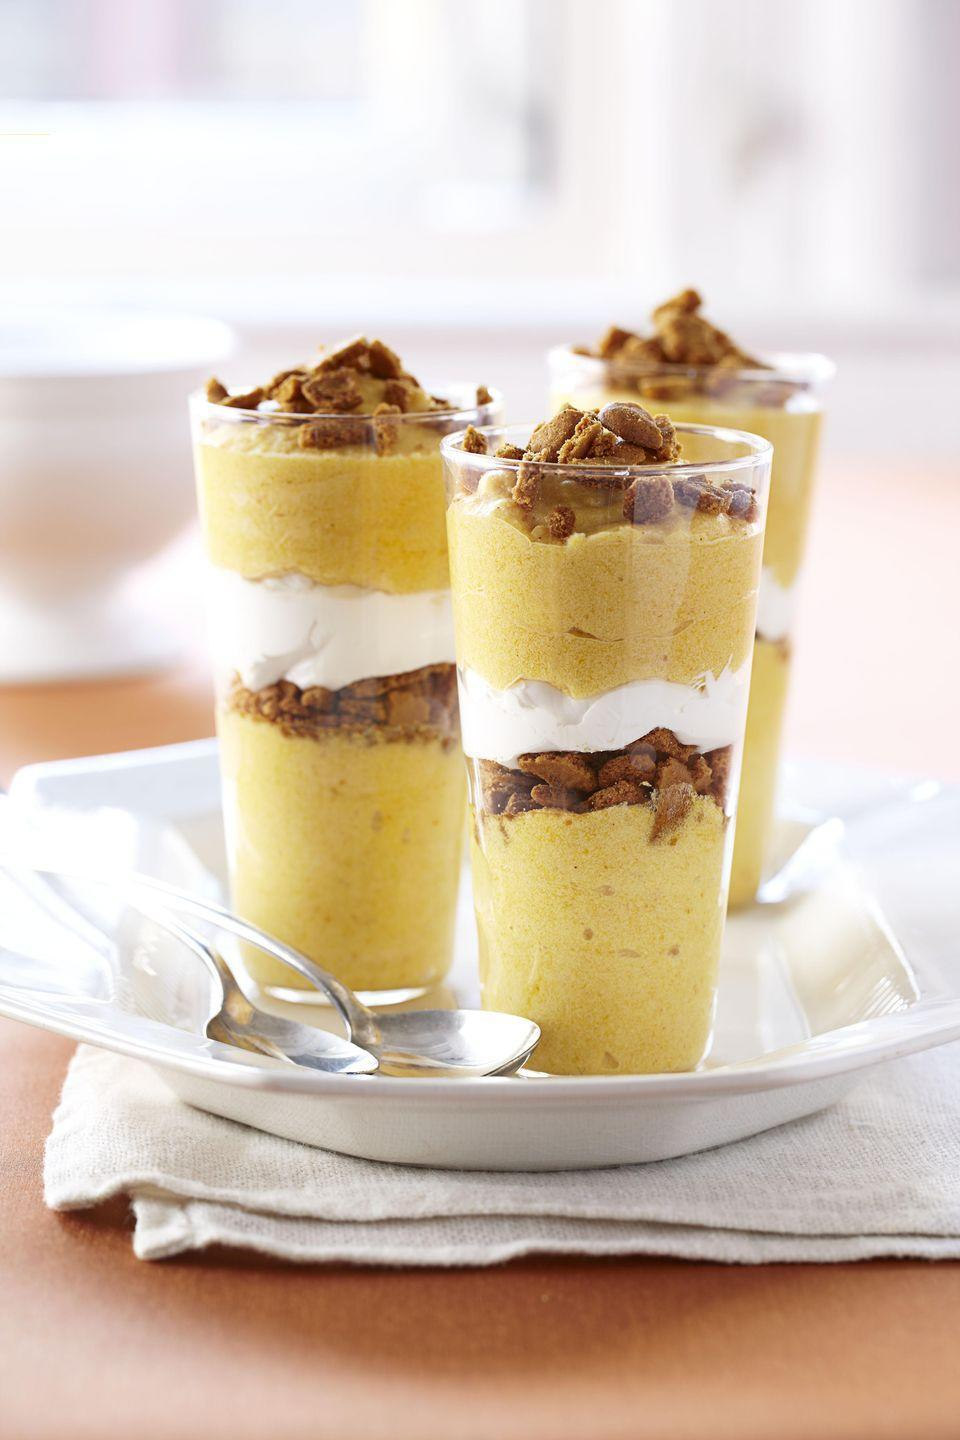 "<p>Meet Ina's delicious, inventive take on the flavors of a traditional <a href=""https://www.goodhousekeeping.com/food-recipes/g3986/pumpkin-pie-recipes/"" rel=""nofollow noopener"" target=""_blank"" data-ylk=""slk:pumpkin pie"" class=""link rapid-noclick-resp"">pumpkin pie</a>. We're into it. </p><p><em><a href=""https://www.goodhousekeeping.com/food-recipes/a11085/pumpkin-mousse-parfaits-recipe-ghk1111/"" rel=""nofollow noopener"" target=""_blank"" data-ylk=""slk:Get the recipe for Pumpkin Mousse Parfaits »"" class=""link rapid-noclick-resp"">Get the recipe for Pumpkin Mousse Parfaits »</a></em></p><p><strong>RELATED: </strong><a href=""https://www.goodhousekeeping.com/holidays/thanksgiving-ideas/g398/ina-garten-thanksgiving-recipes/"" rel=""nofollow noopener"" target=""_blank"" data-ylk=""slk:19 Delicious Ina Garten Thanksgiving Recipes to Wow Your Dinner Guests"" class=""link rapid-noclick-resp"">19 Delicious Ina Garten Thanksgiving Recipes to Wow Your Dinner Guests</a></p>"